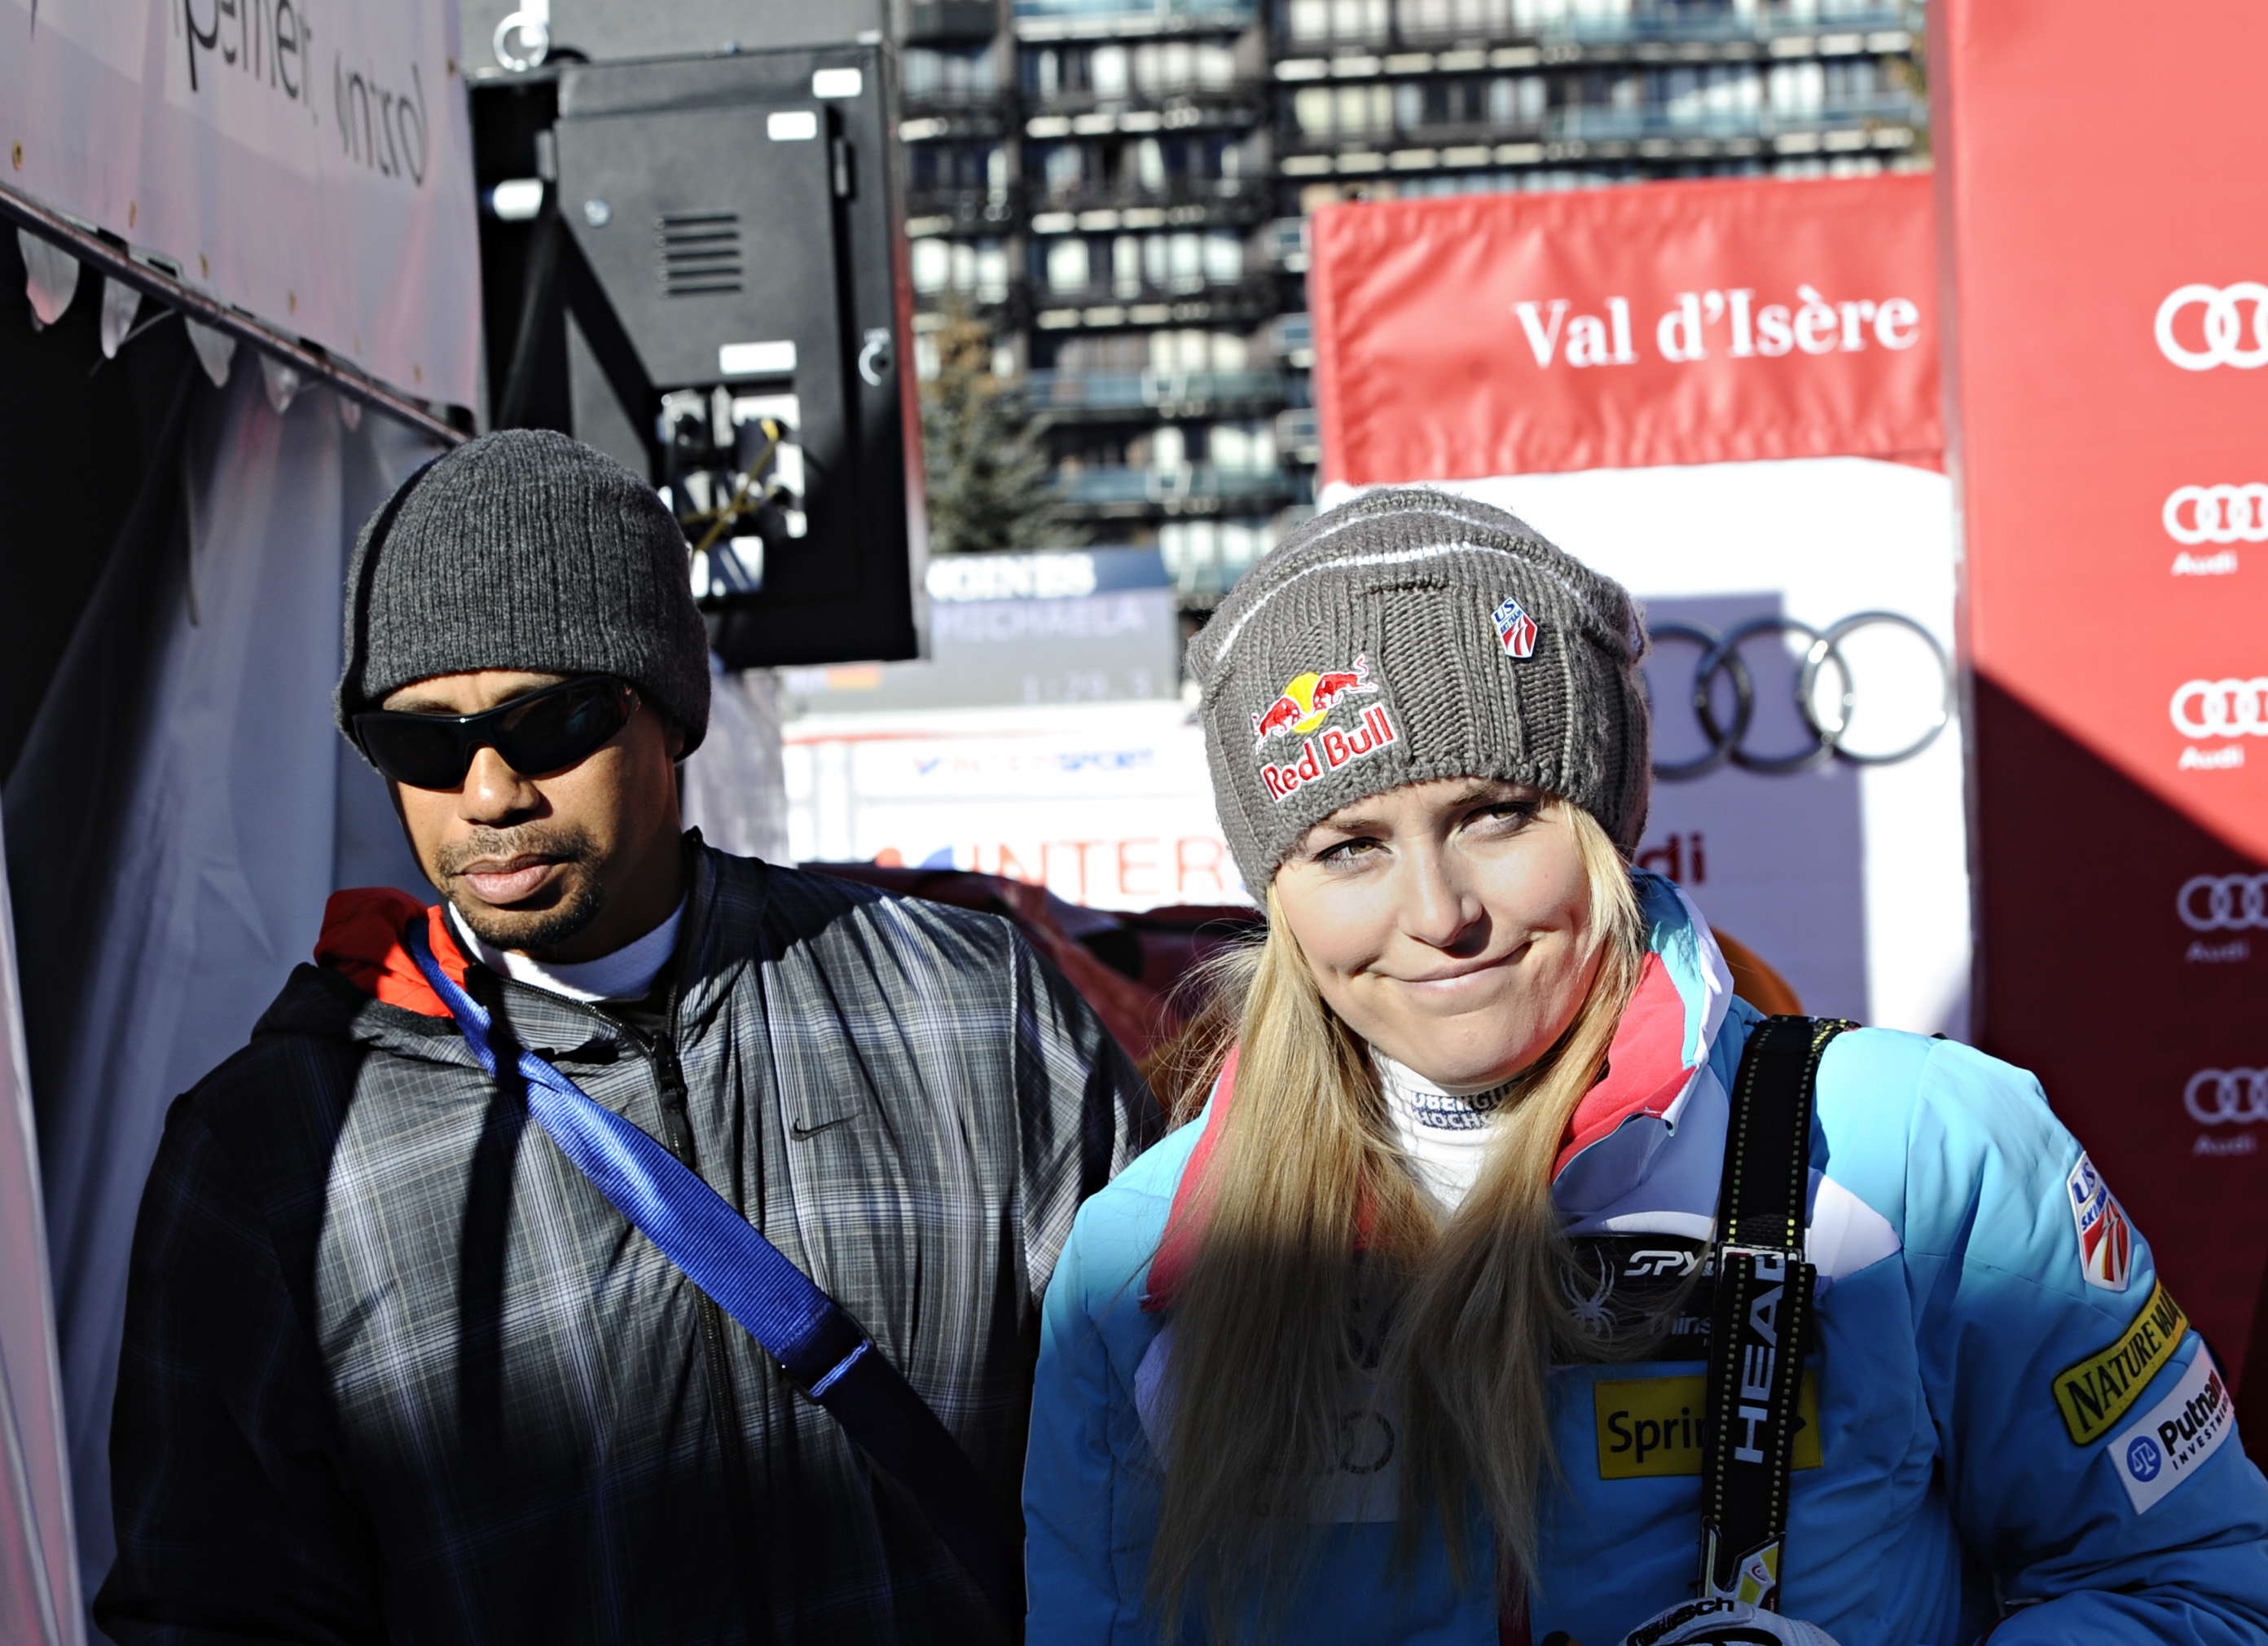 Woods recently announced his split from Lindsey Vonn (Photo: Getty Images)